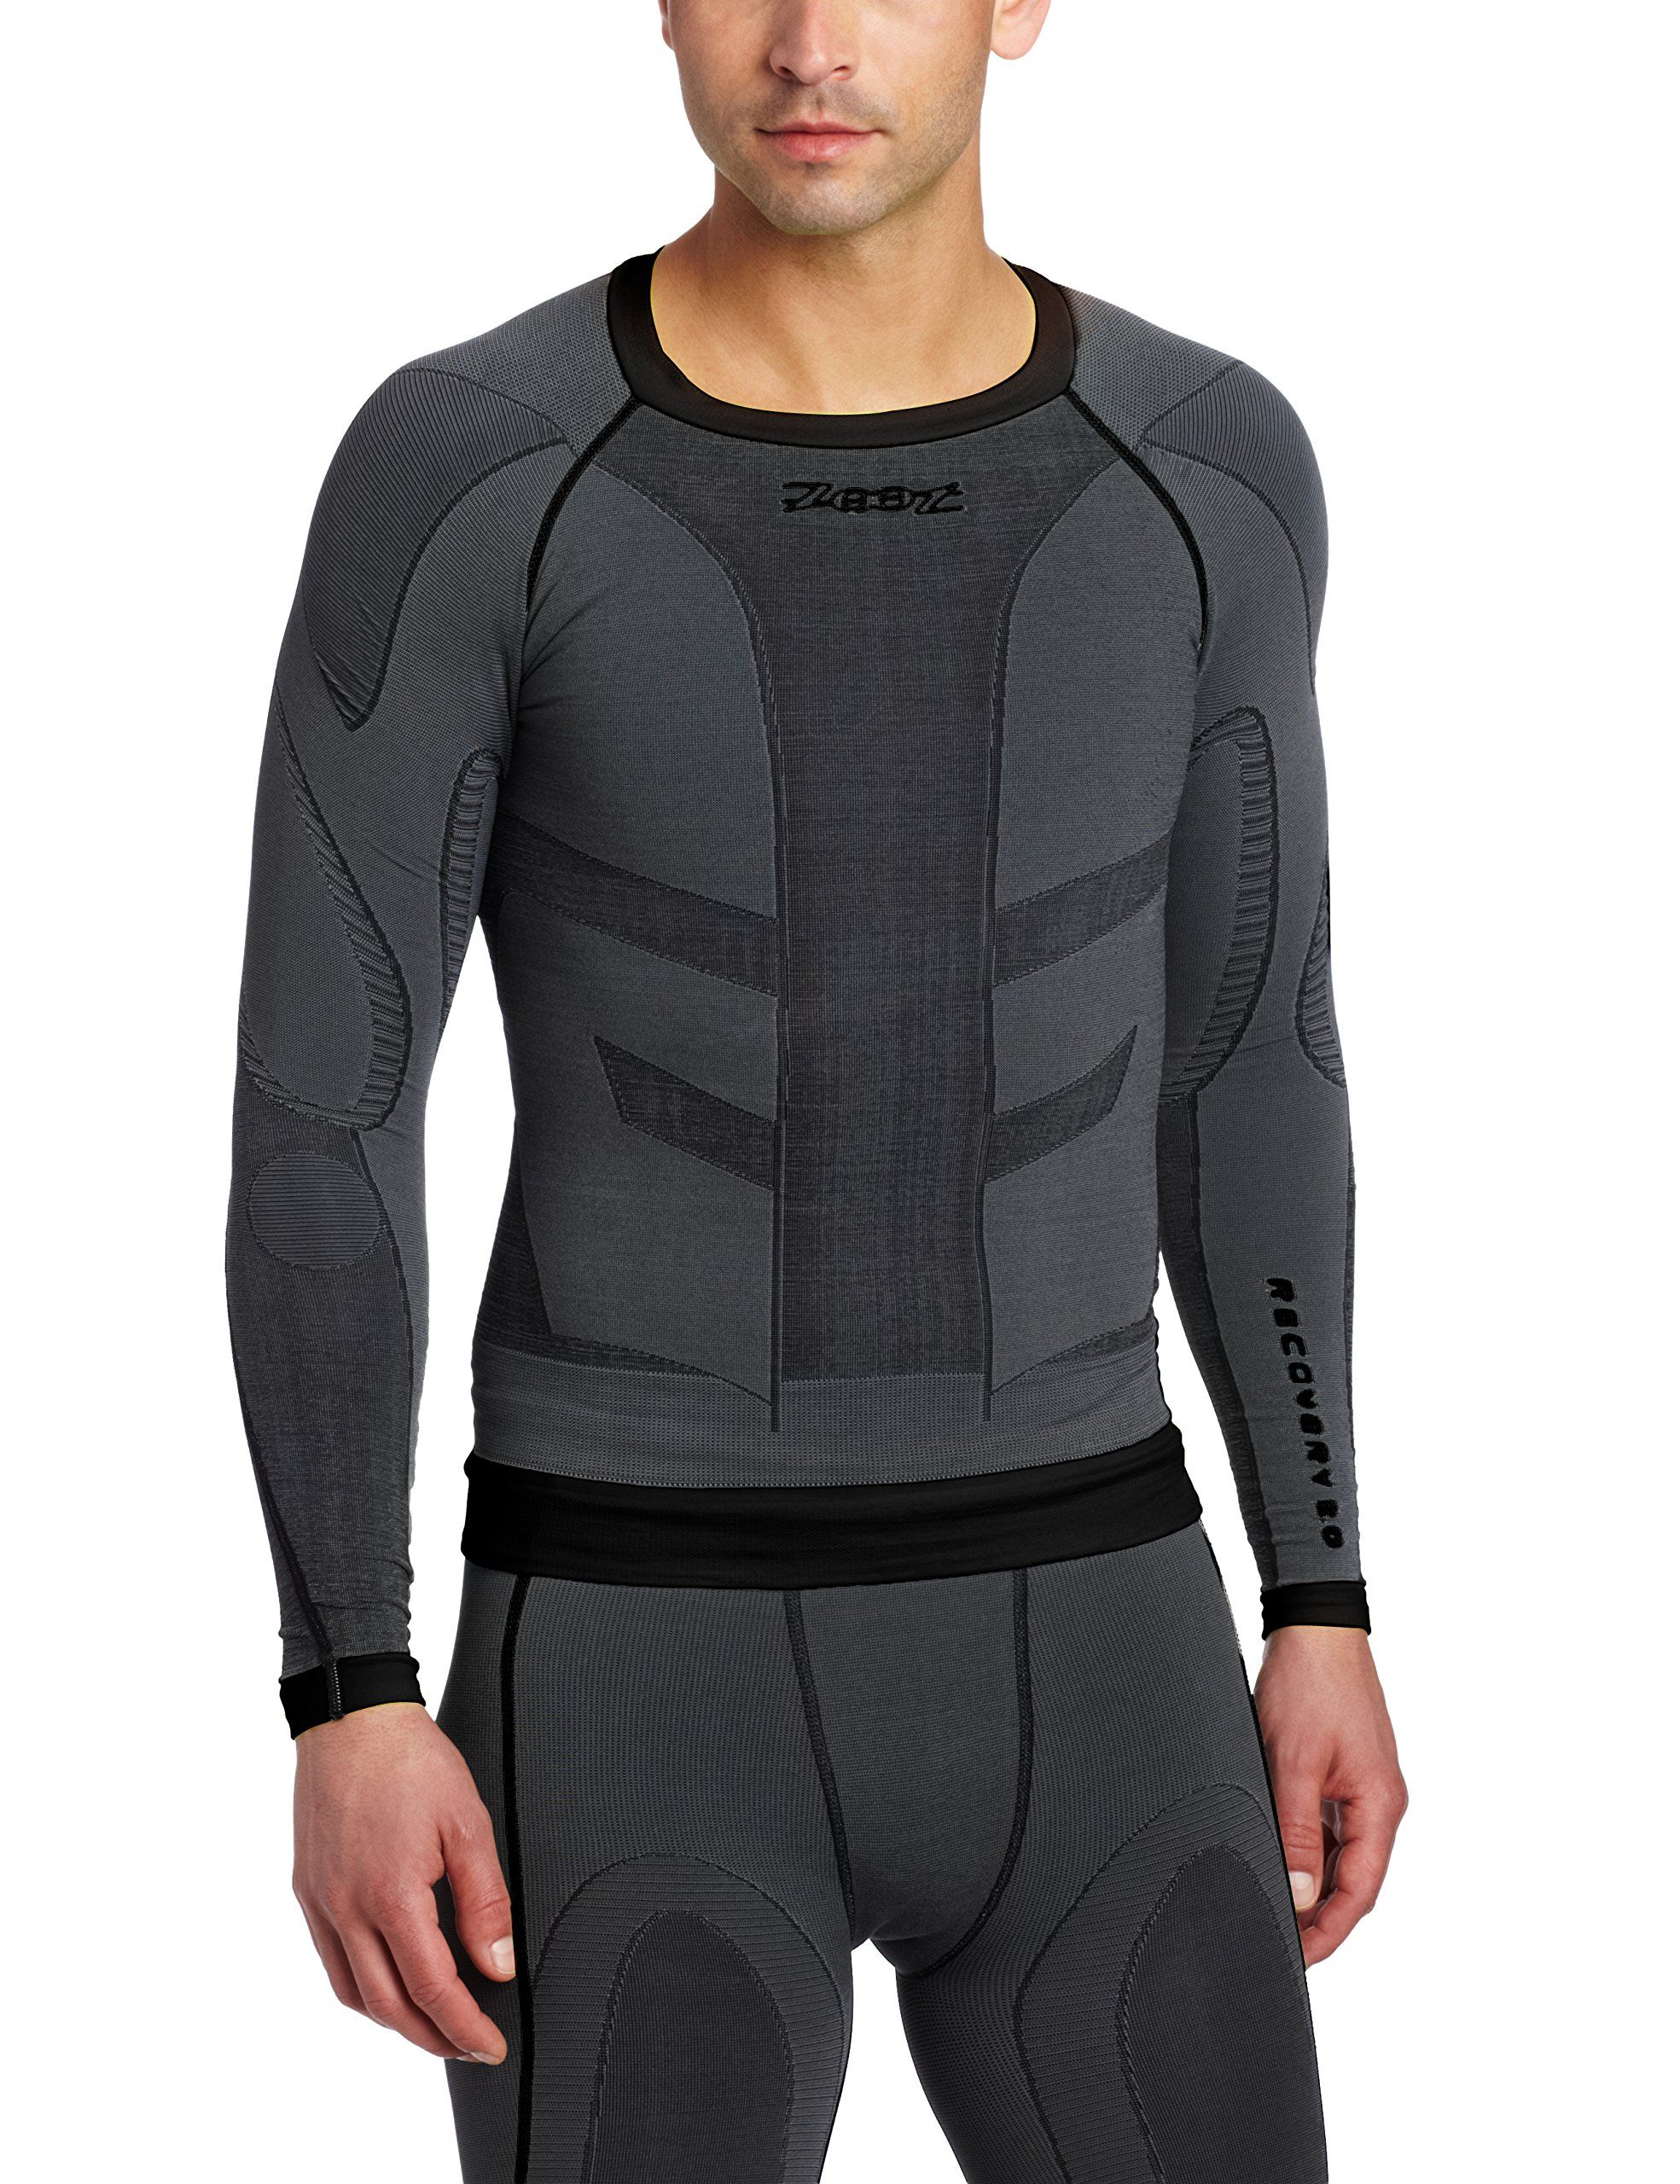 Saucony Mens Life On The Run Cooldown Long Sleeve Top Grey Sports Running Gym